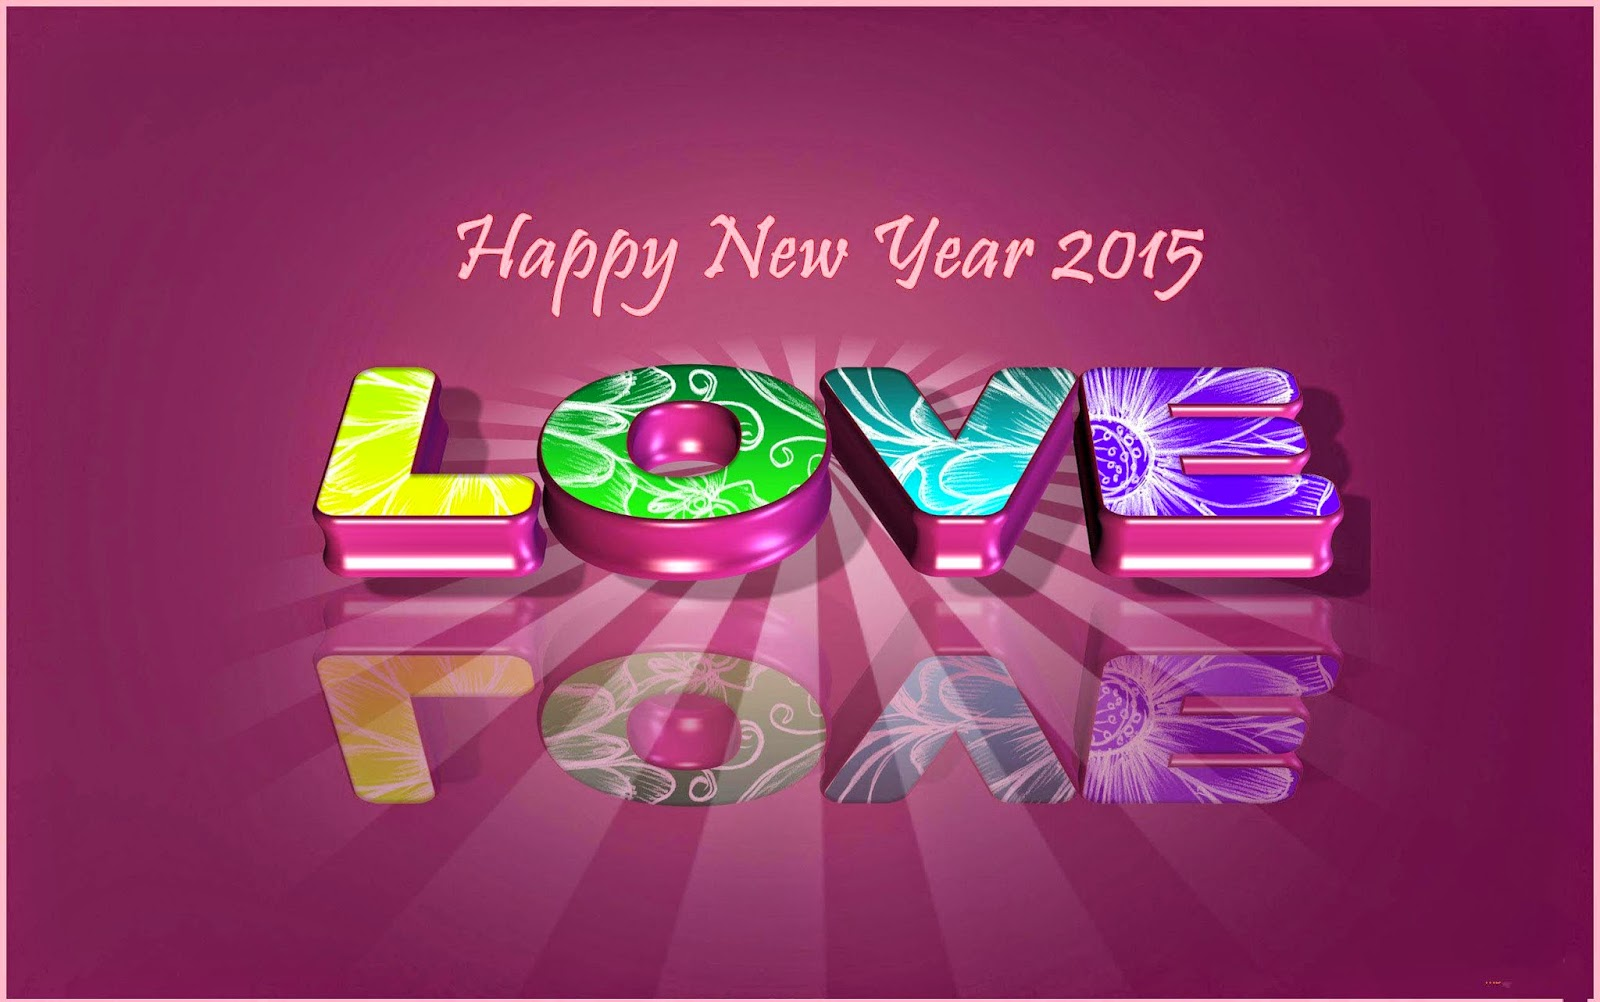 Happy New Year 2015 Pictures - Wishings Cards